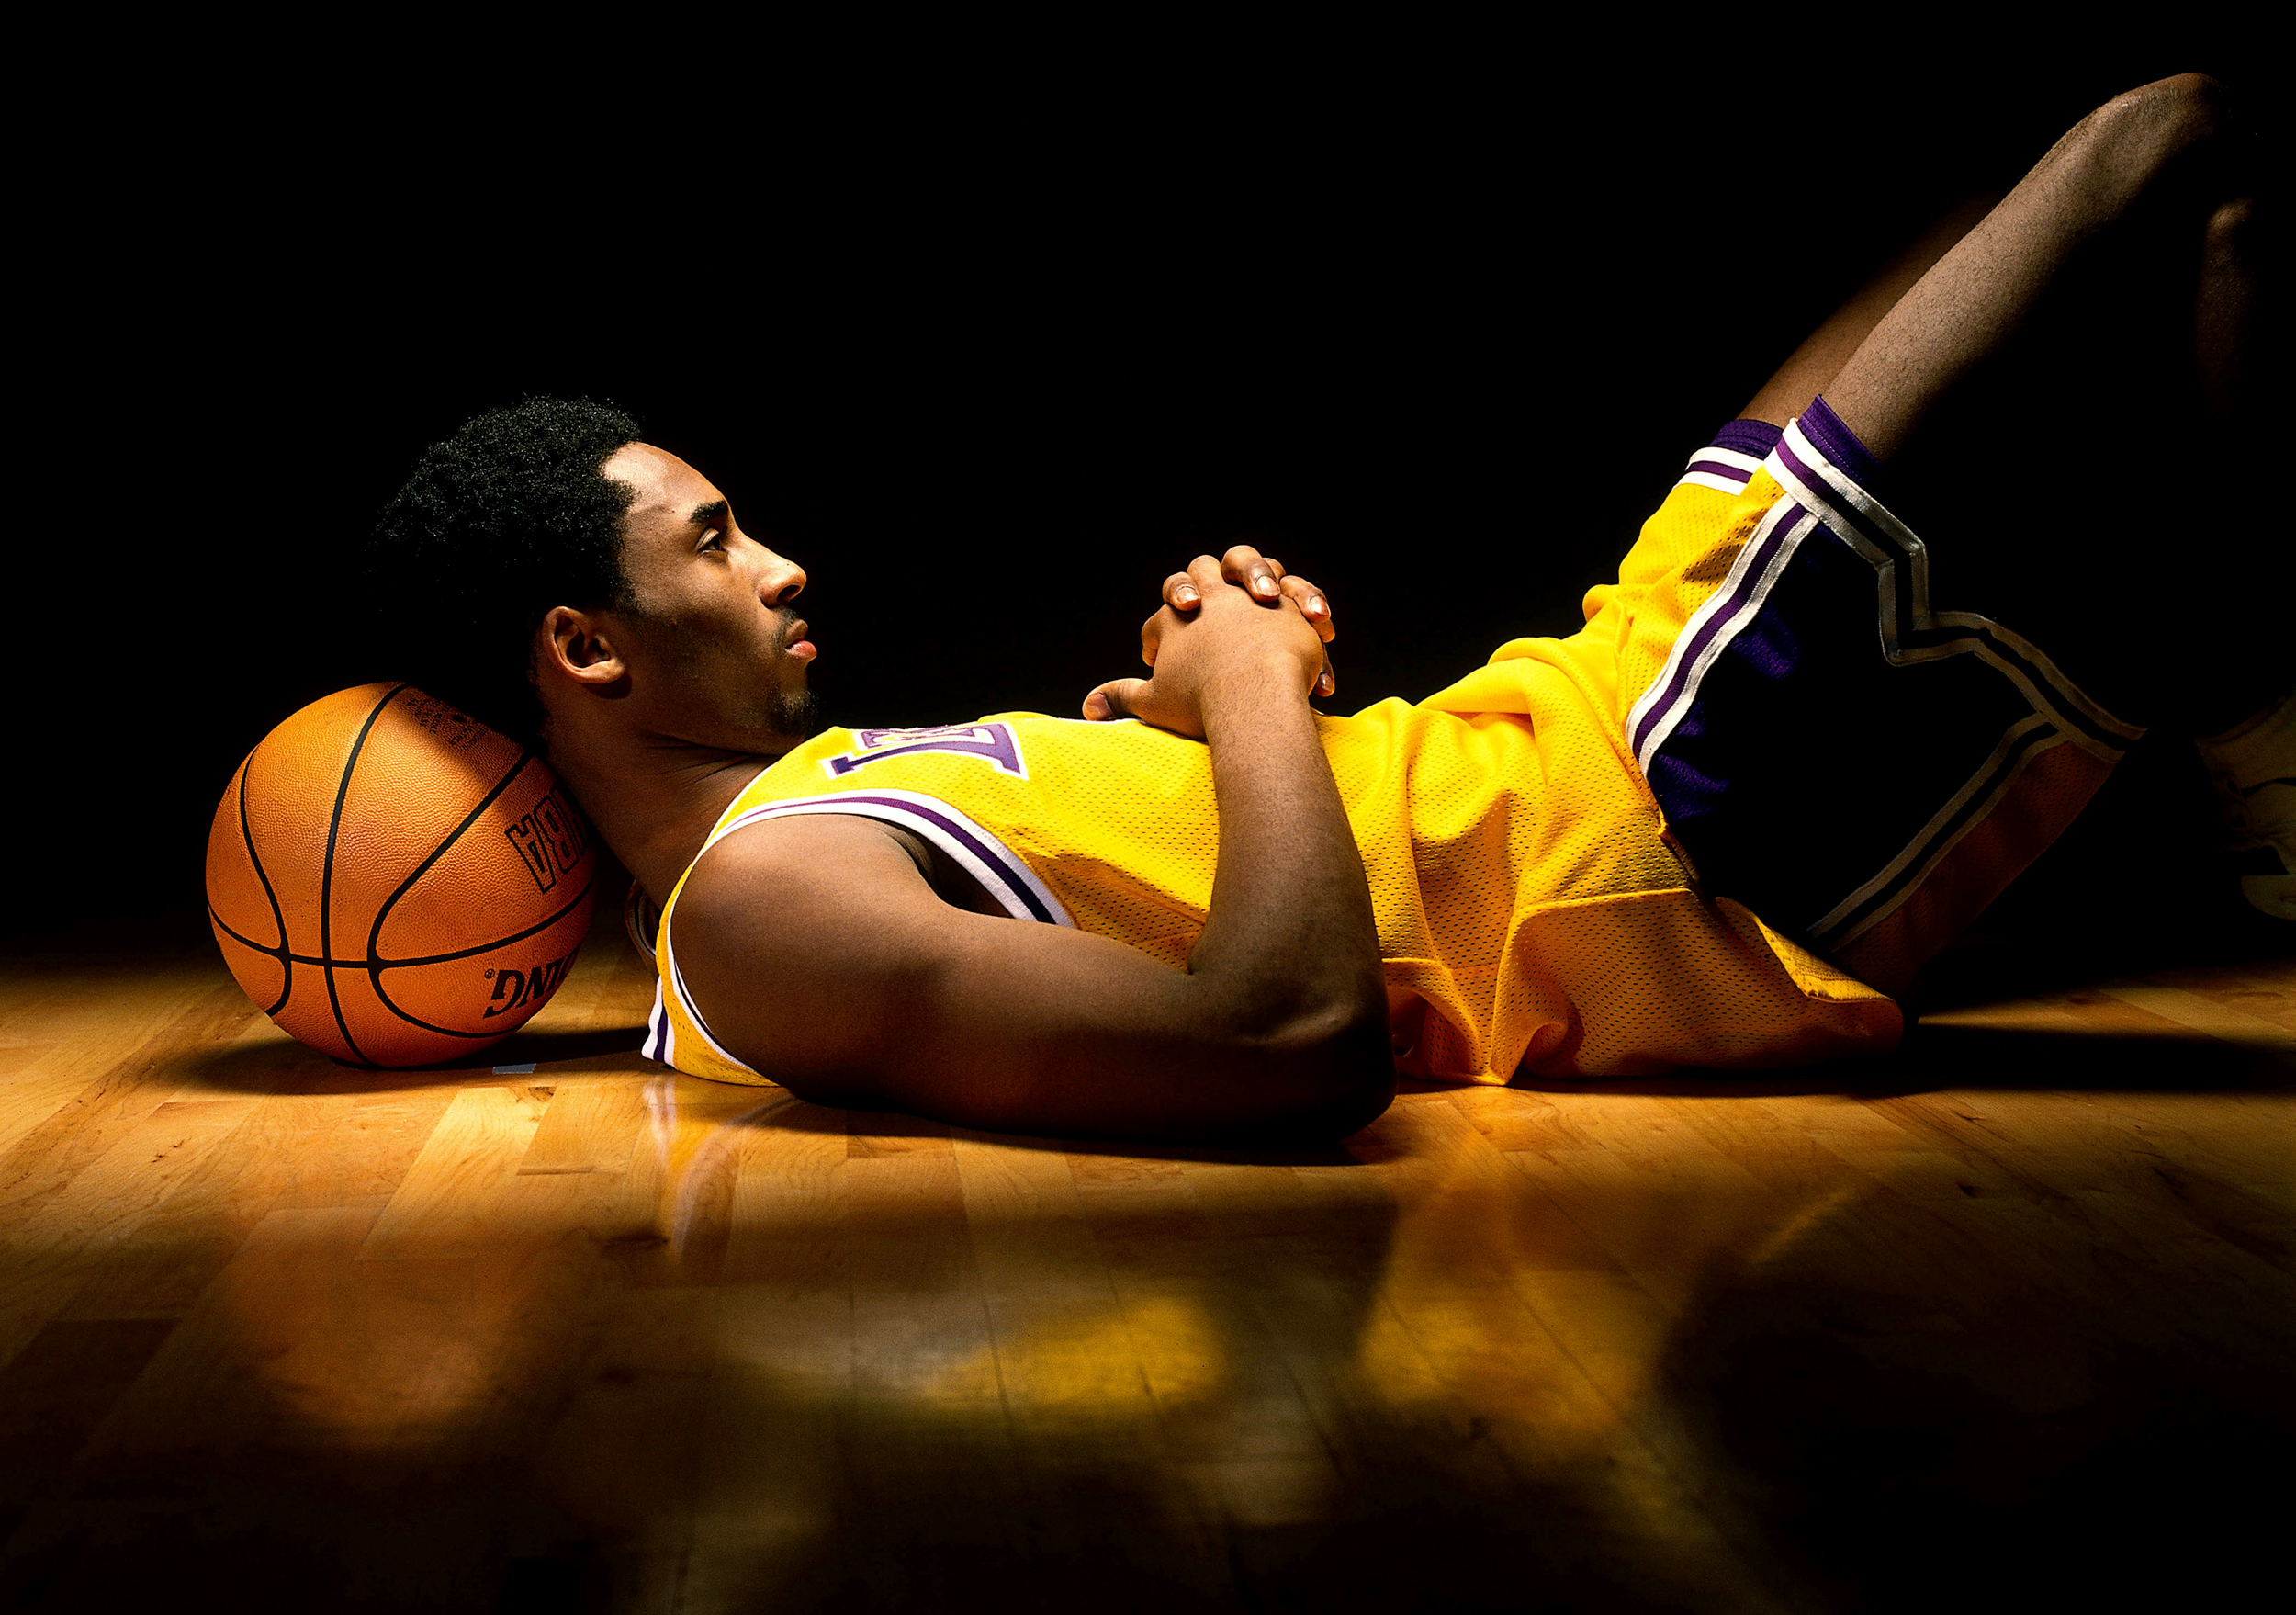 Kobe bryant was my idol but why wasn't i looking up to a woman